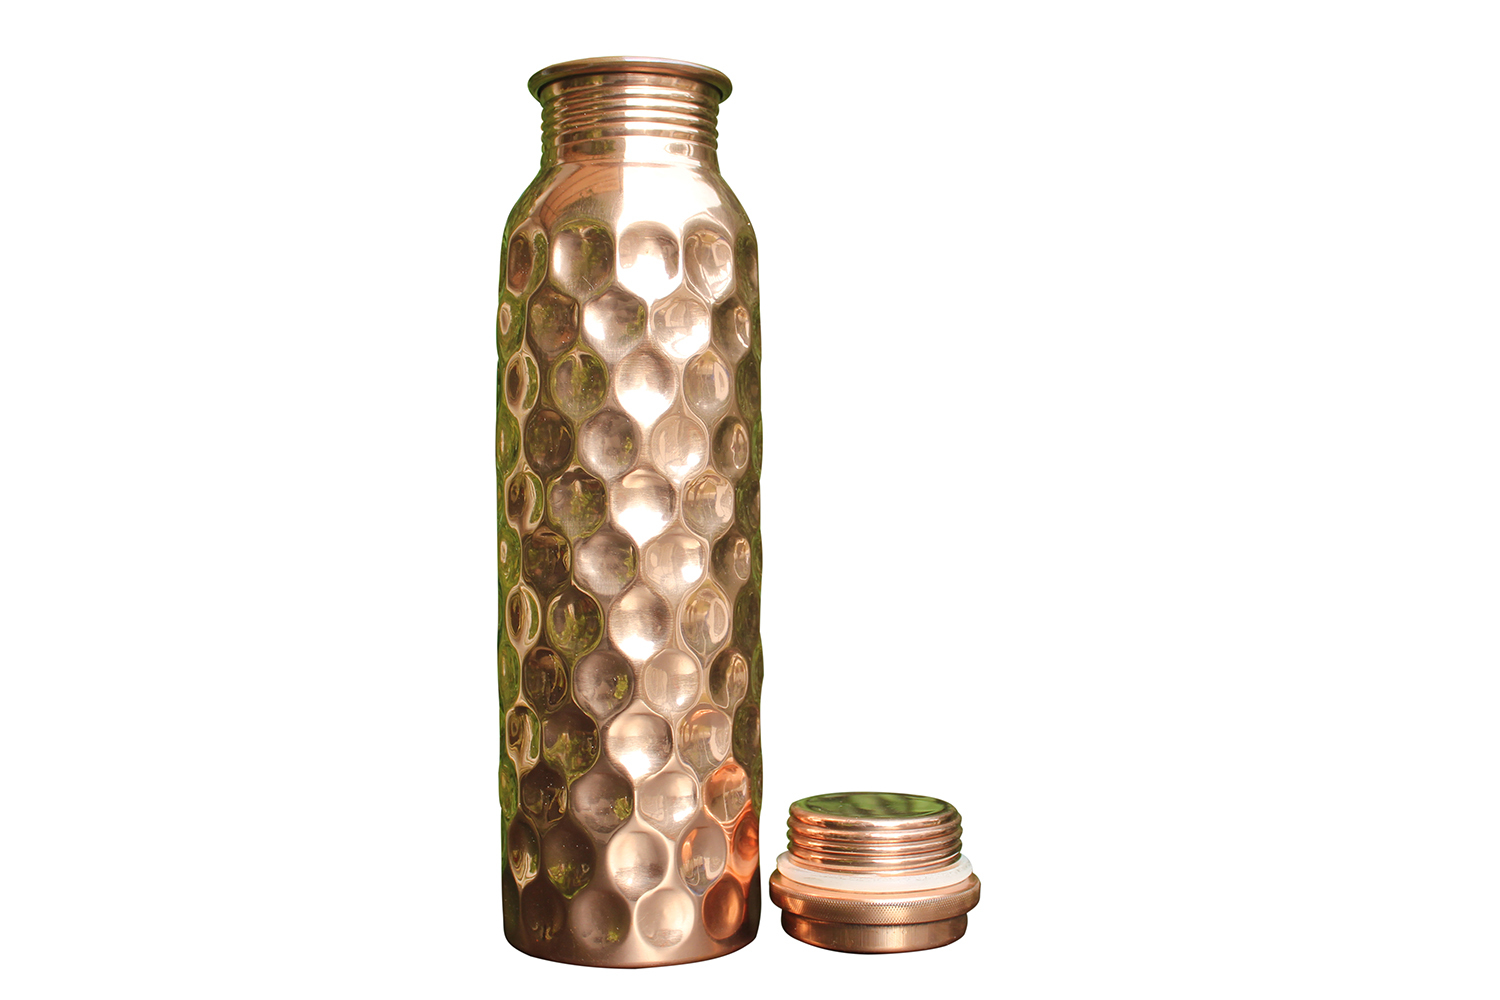 copper bottle hammered 3resize.jpg